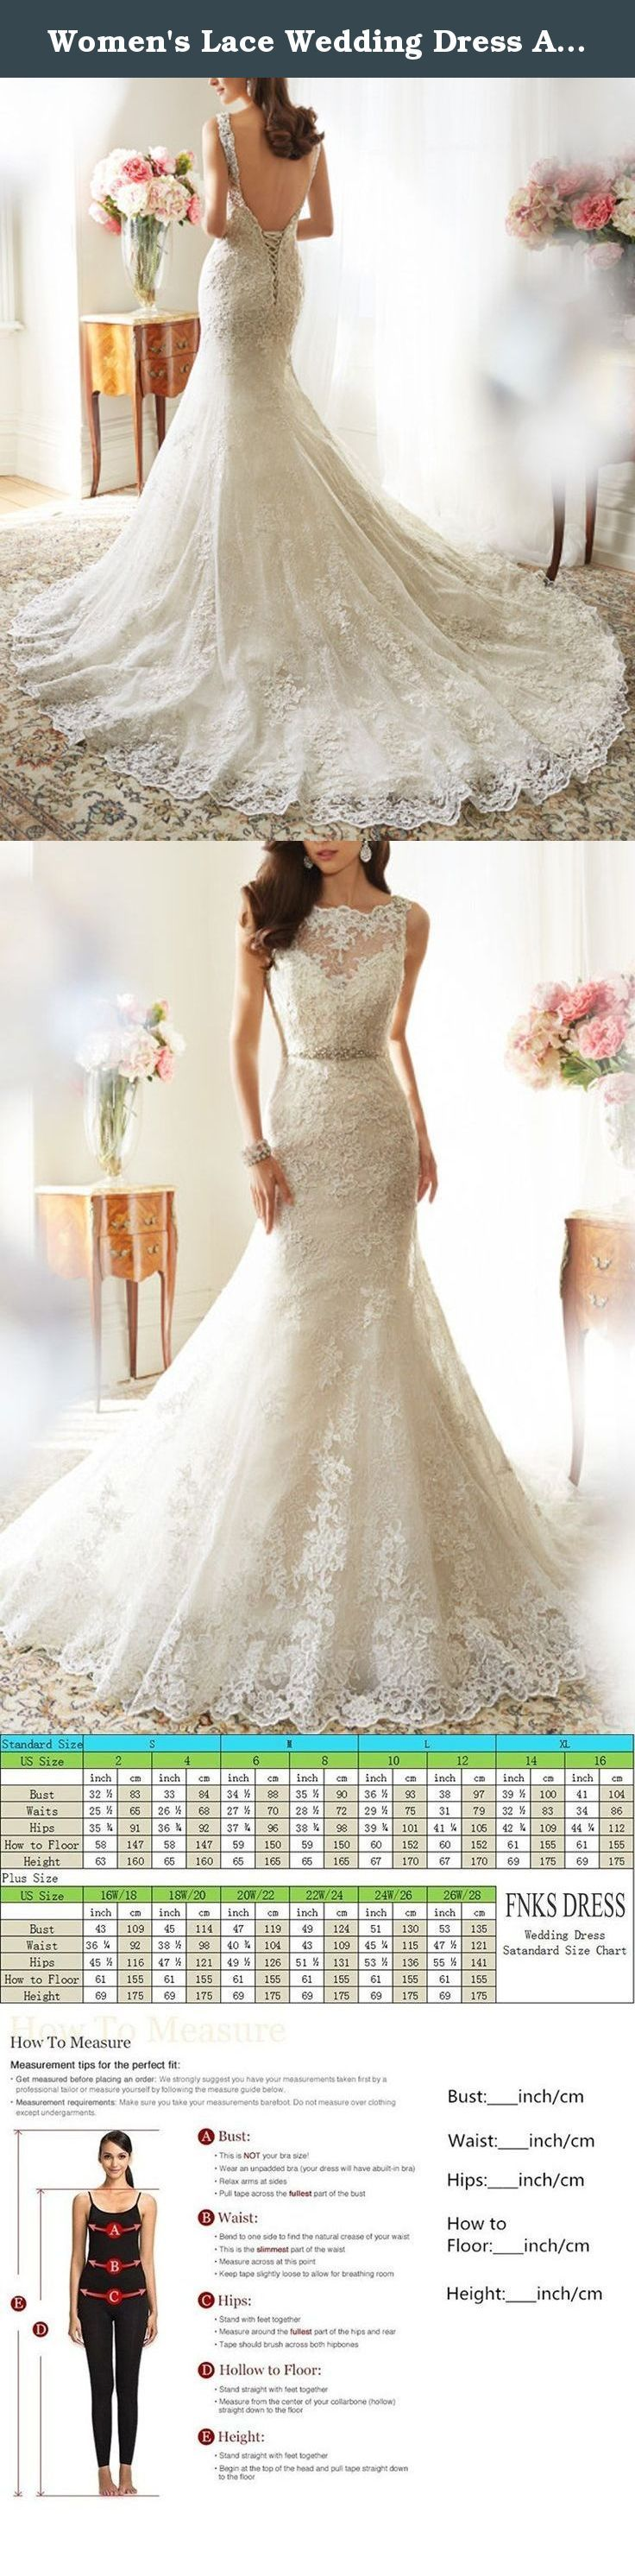 Women's Lace Wedding Dress Applique Mermaid Beaded Belt Laceup Wedding Dress for Bride 2017. Features: All our wedding dress are handmade so the size may vary by approximately one inches in either. direction of the measurements.Please kindly check the us size chart before making Order. Suitable: Church wedding, beach wedding, outdoor wedding, ordinary wedding. Shipping: Our dress need a additional tailoring time,usually you can get it within 8-18 days,if you chhose Expedited. Standard...